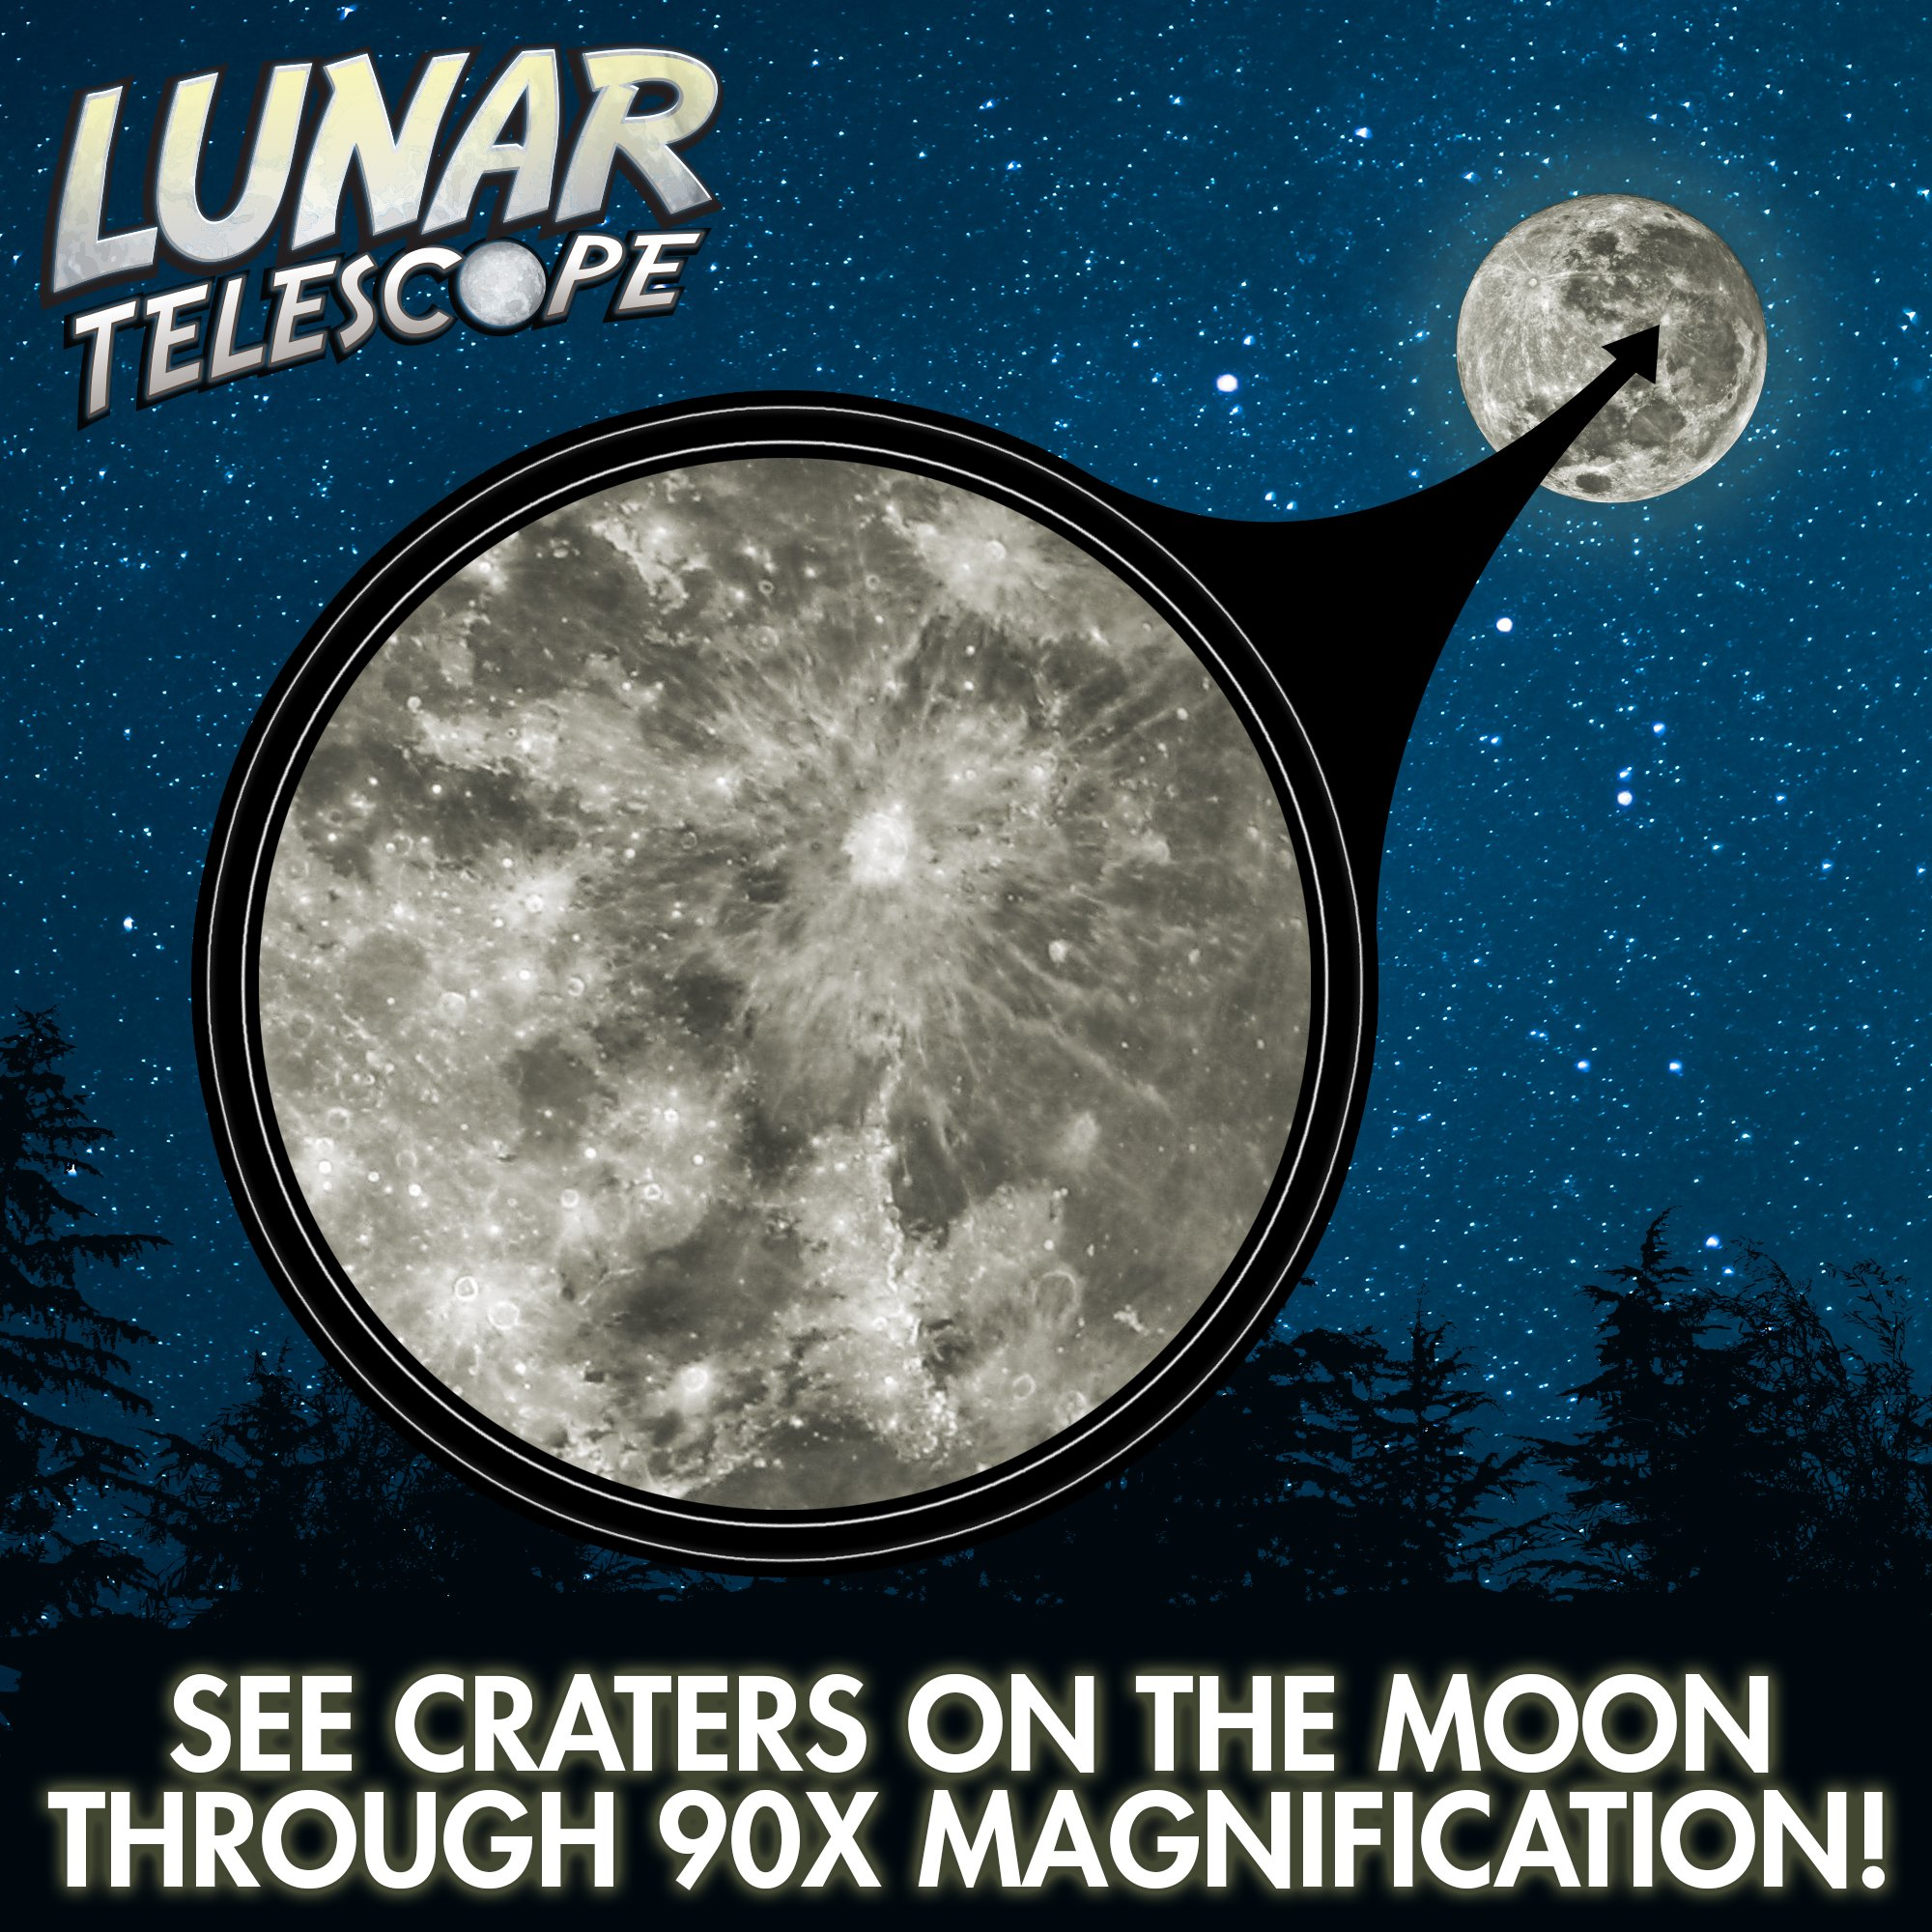 Lunar Telescope for Kids - Explore the Moon and its Craters (2017 Release) by Discover with Dr. Cool